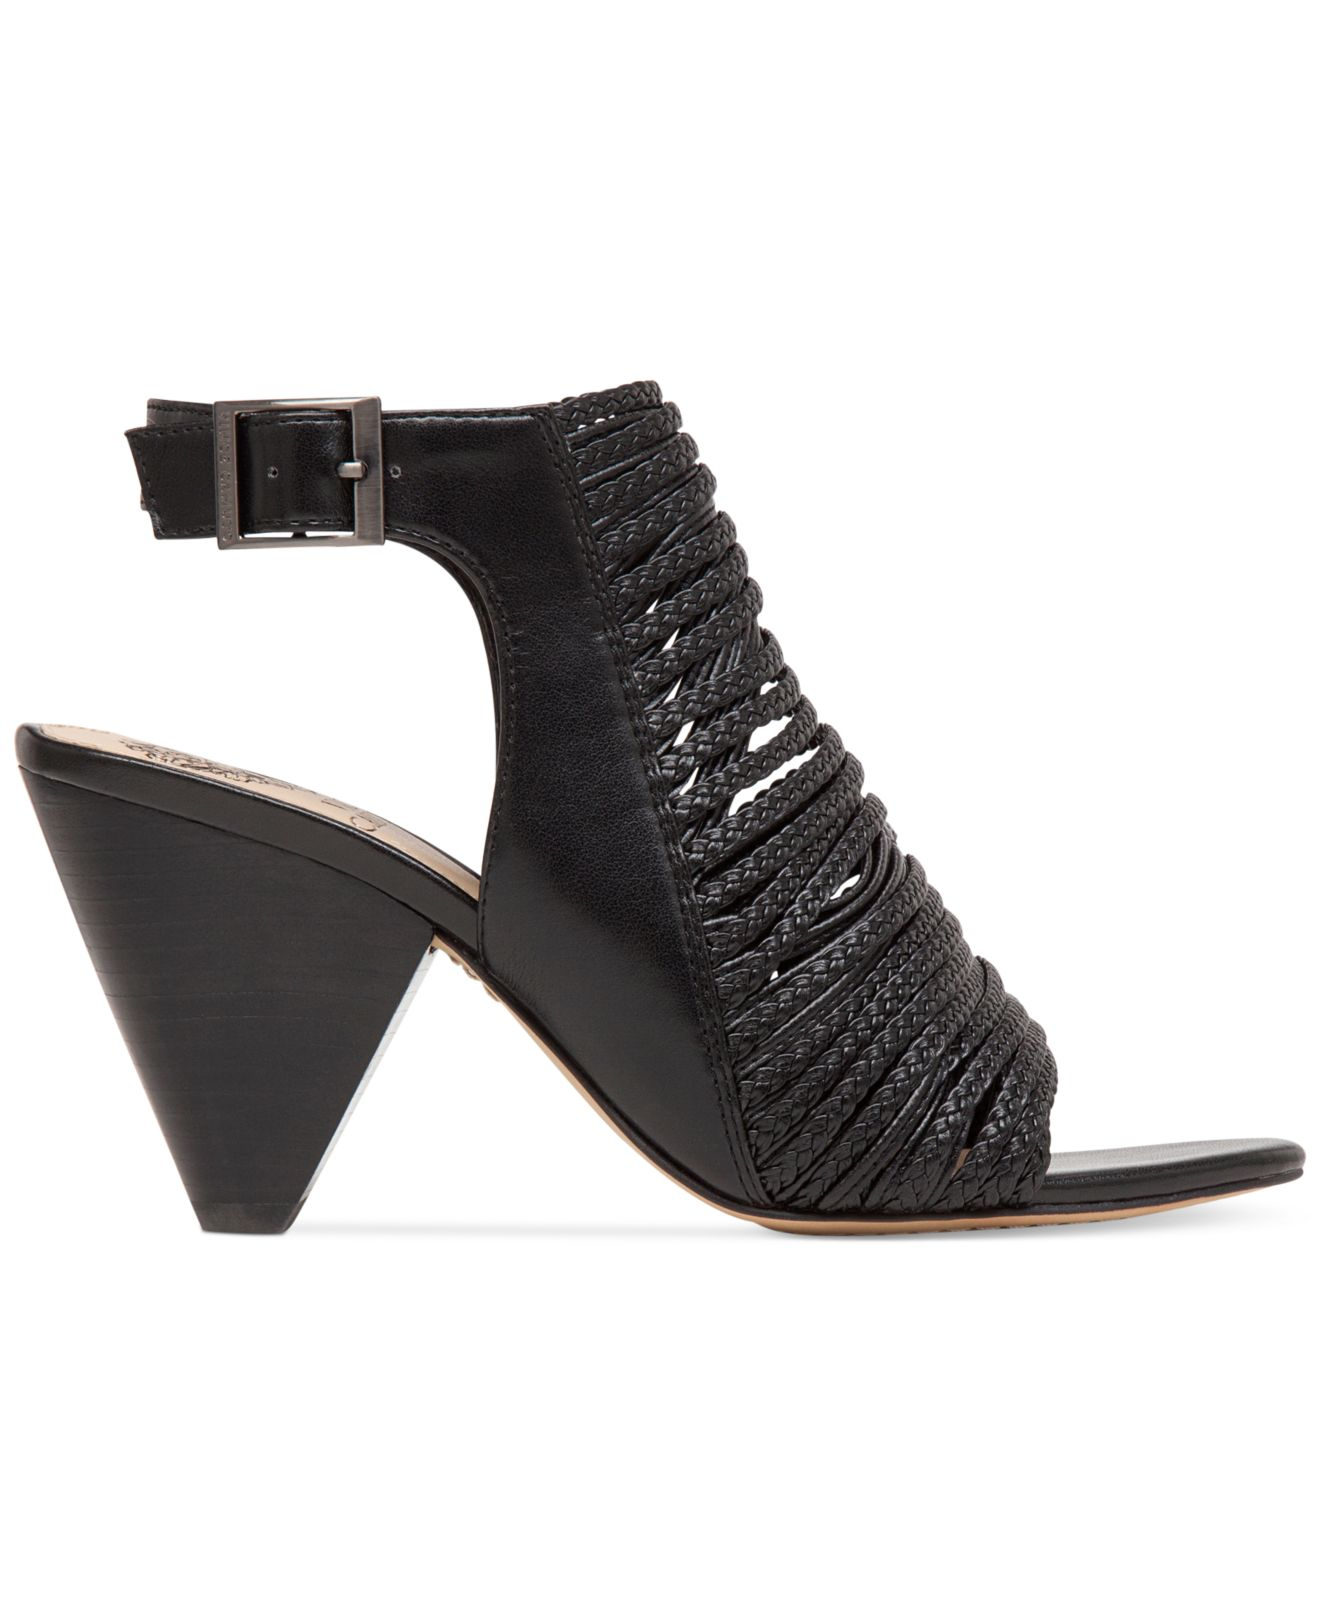 Vince Camuto Entik Braided Dress Sandals In Black Lyst